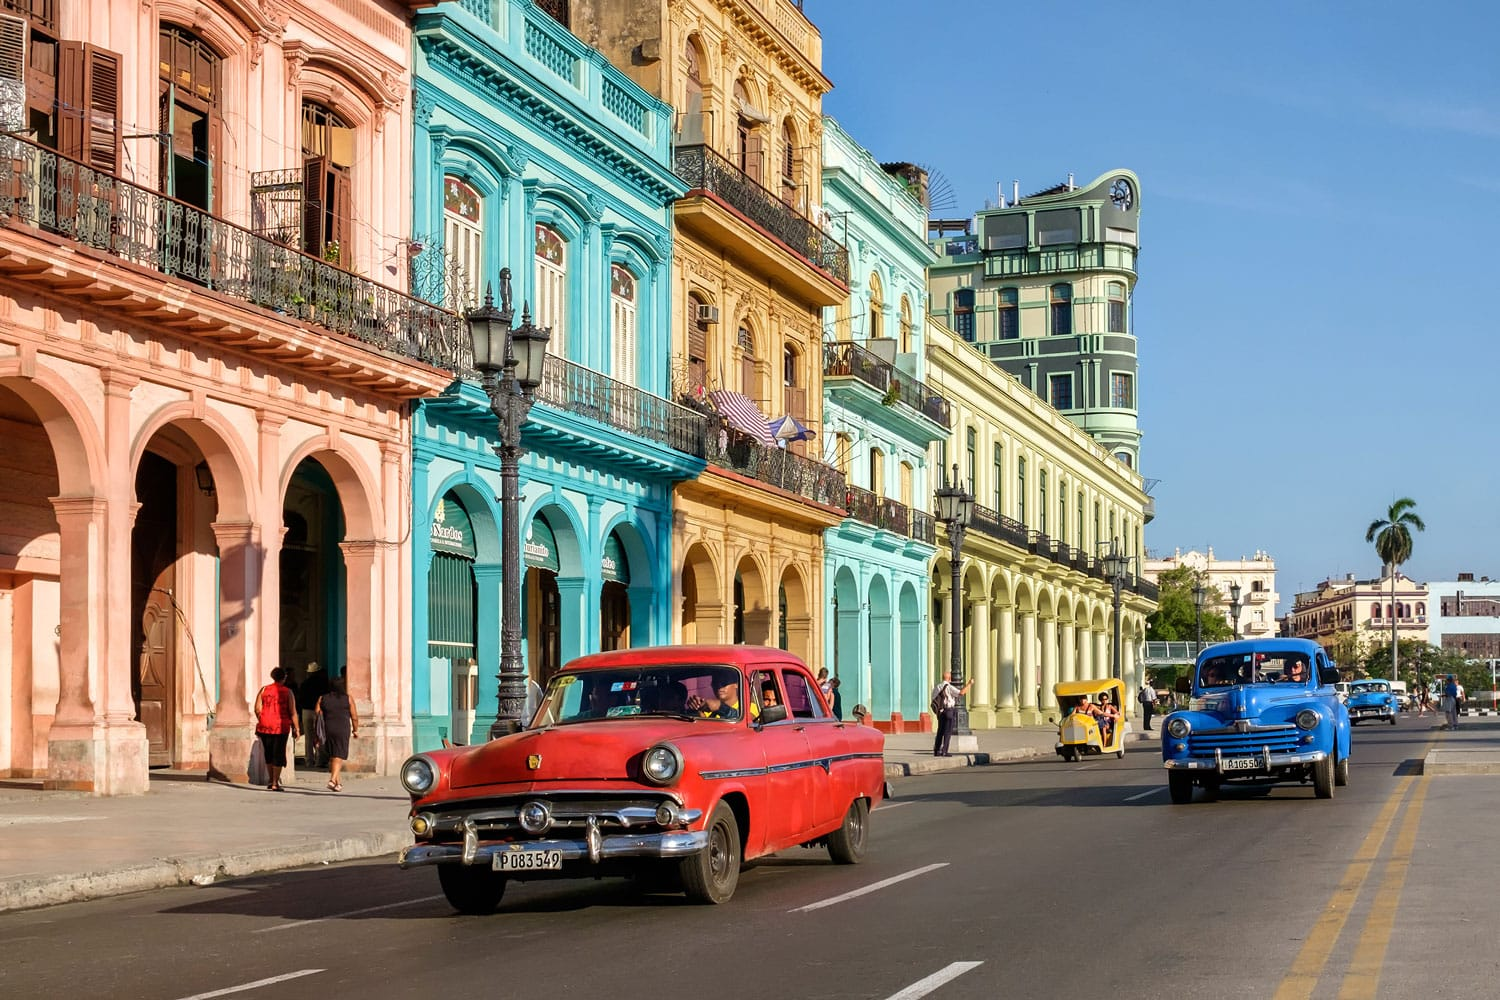 Street scene with colorful buildings and old american car in downtown Havana, Cuba